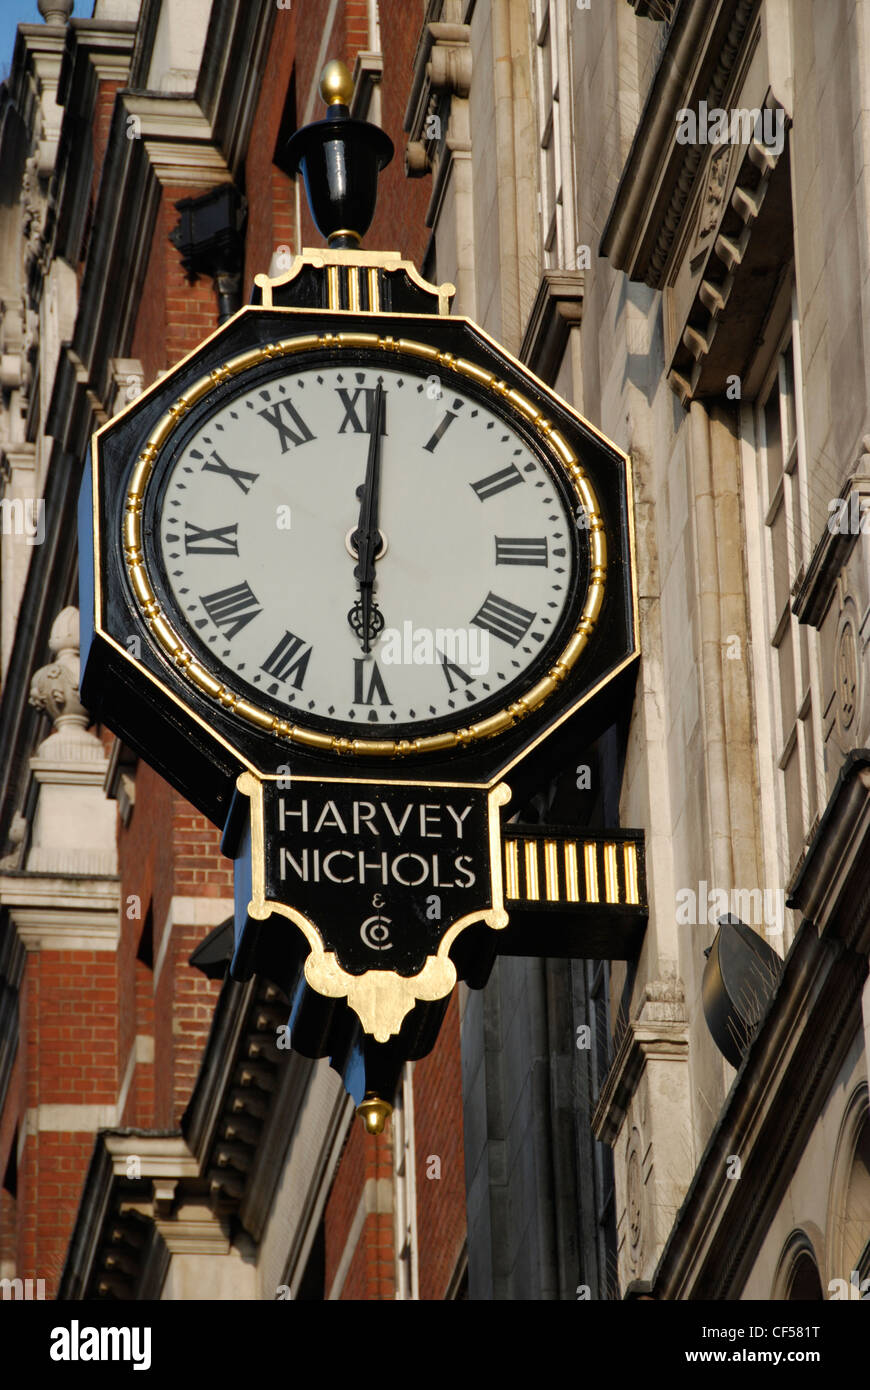 Exterior view of a clock face on the wall of harvey nichols stock exterior view of a clock face on the wall of harvey nichols department store amipublicfo Choice Image